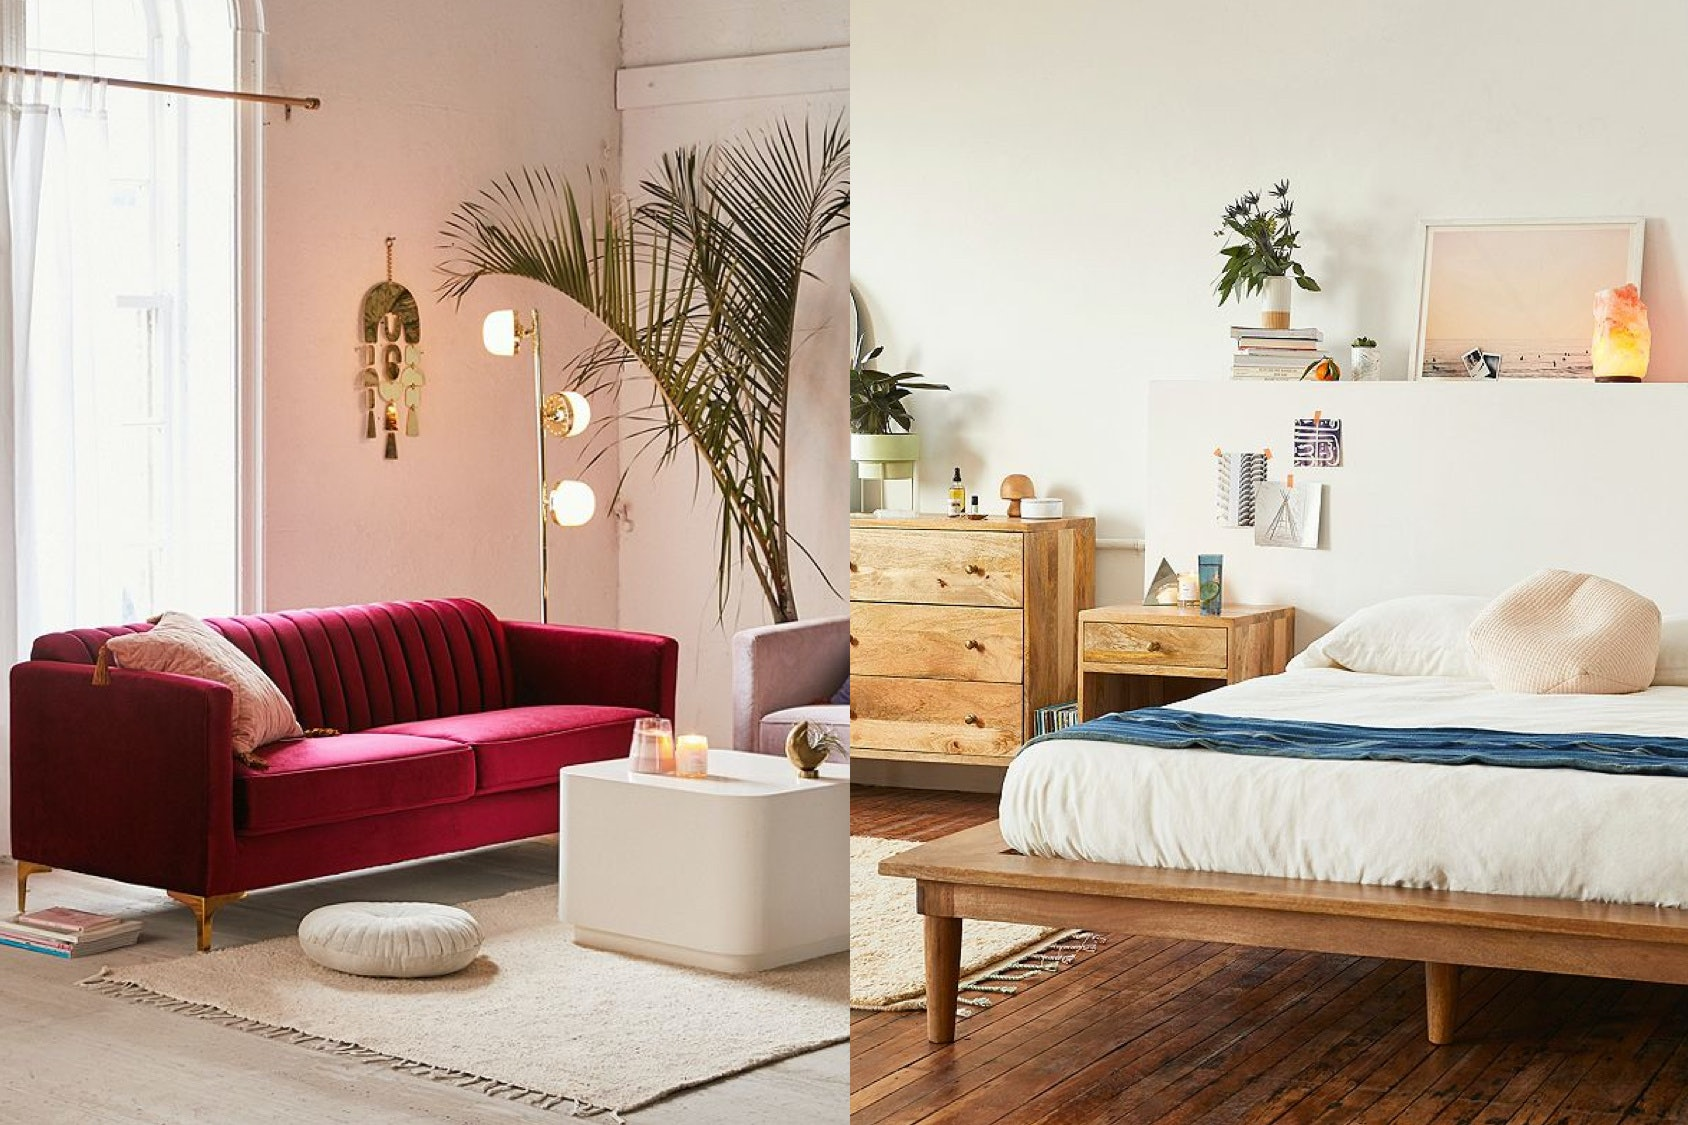 urban outfitter furniture. Urban Outfitters\u0027 Furniture Sale Includes Up To 40% Off Couches, Tables, \u0026 Other Home Decor Needs Outfitter L